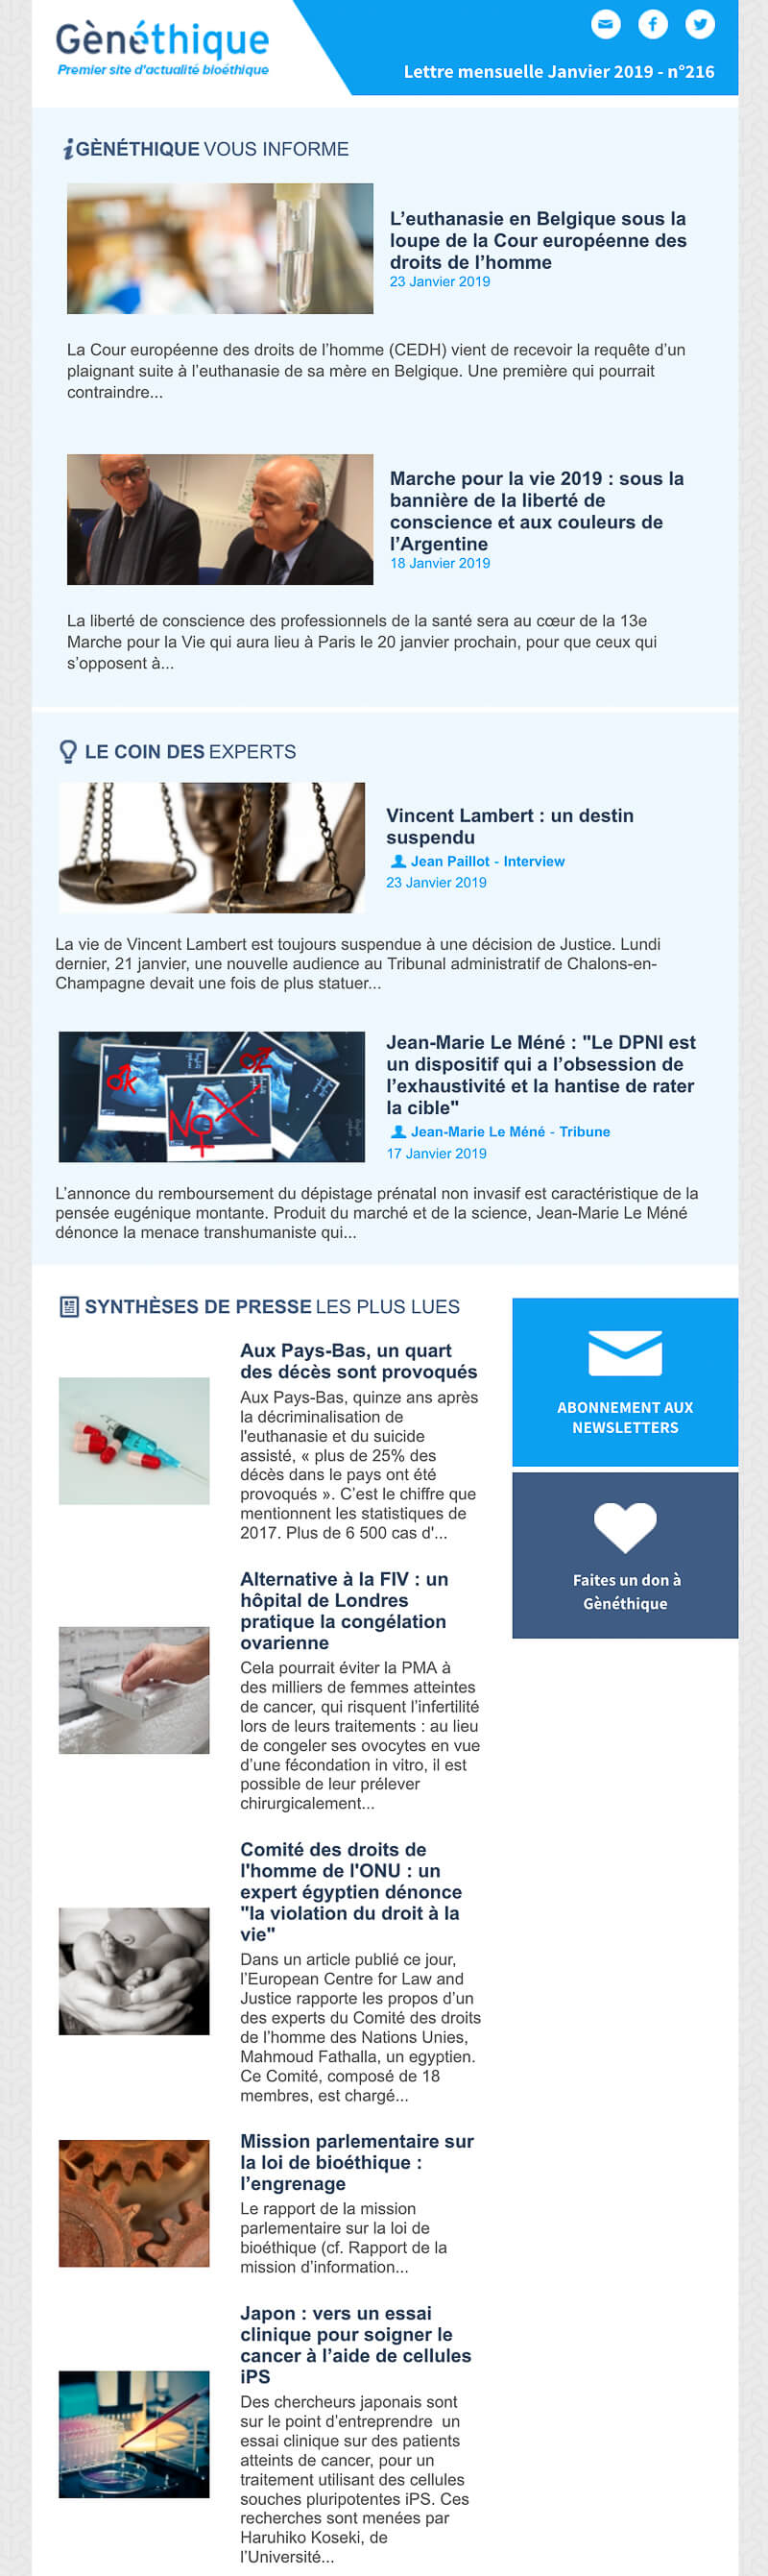 Newsletter Gènéthique